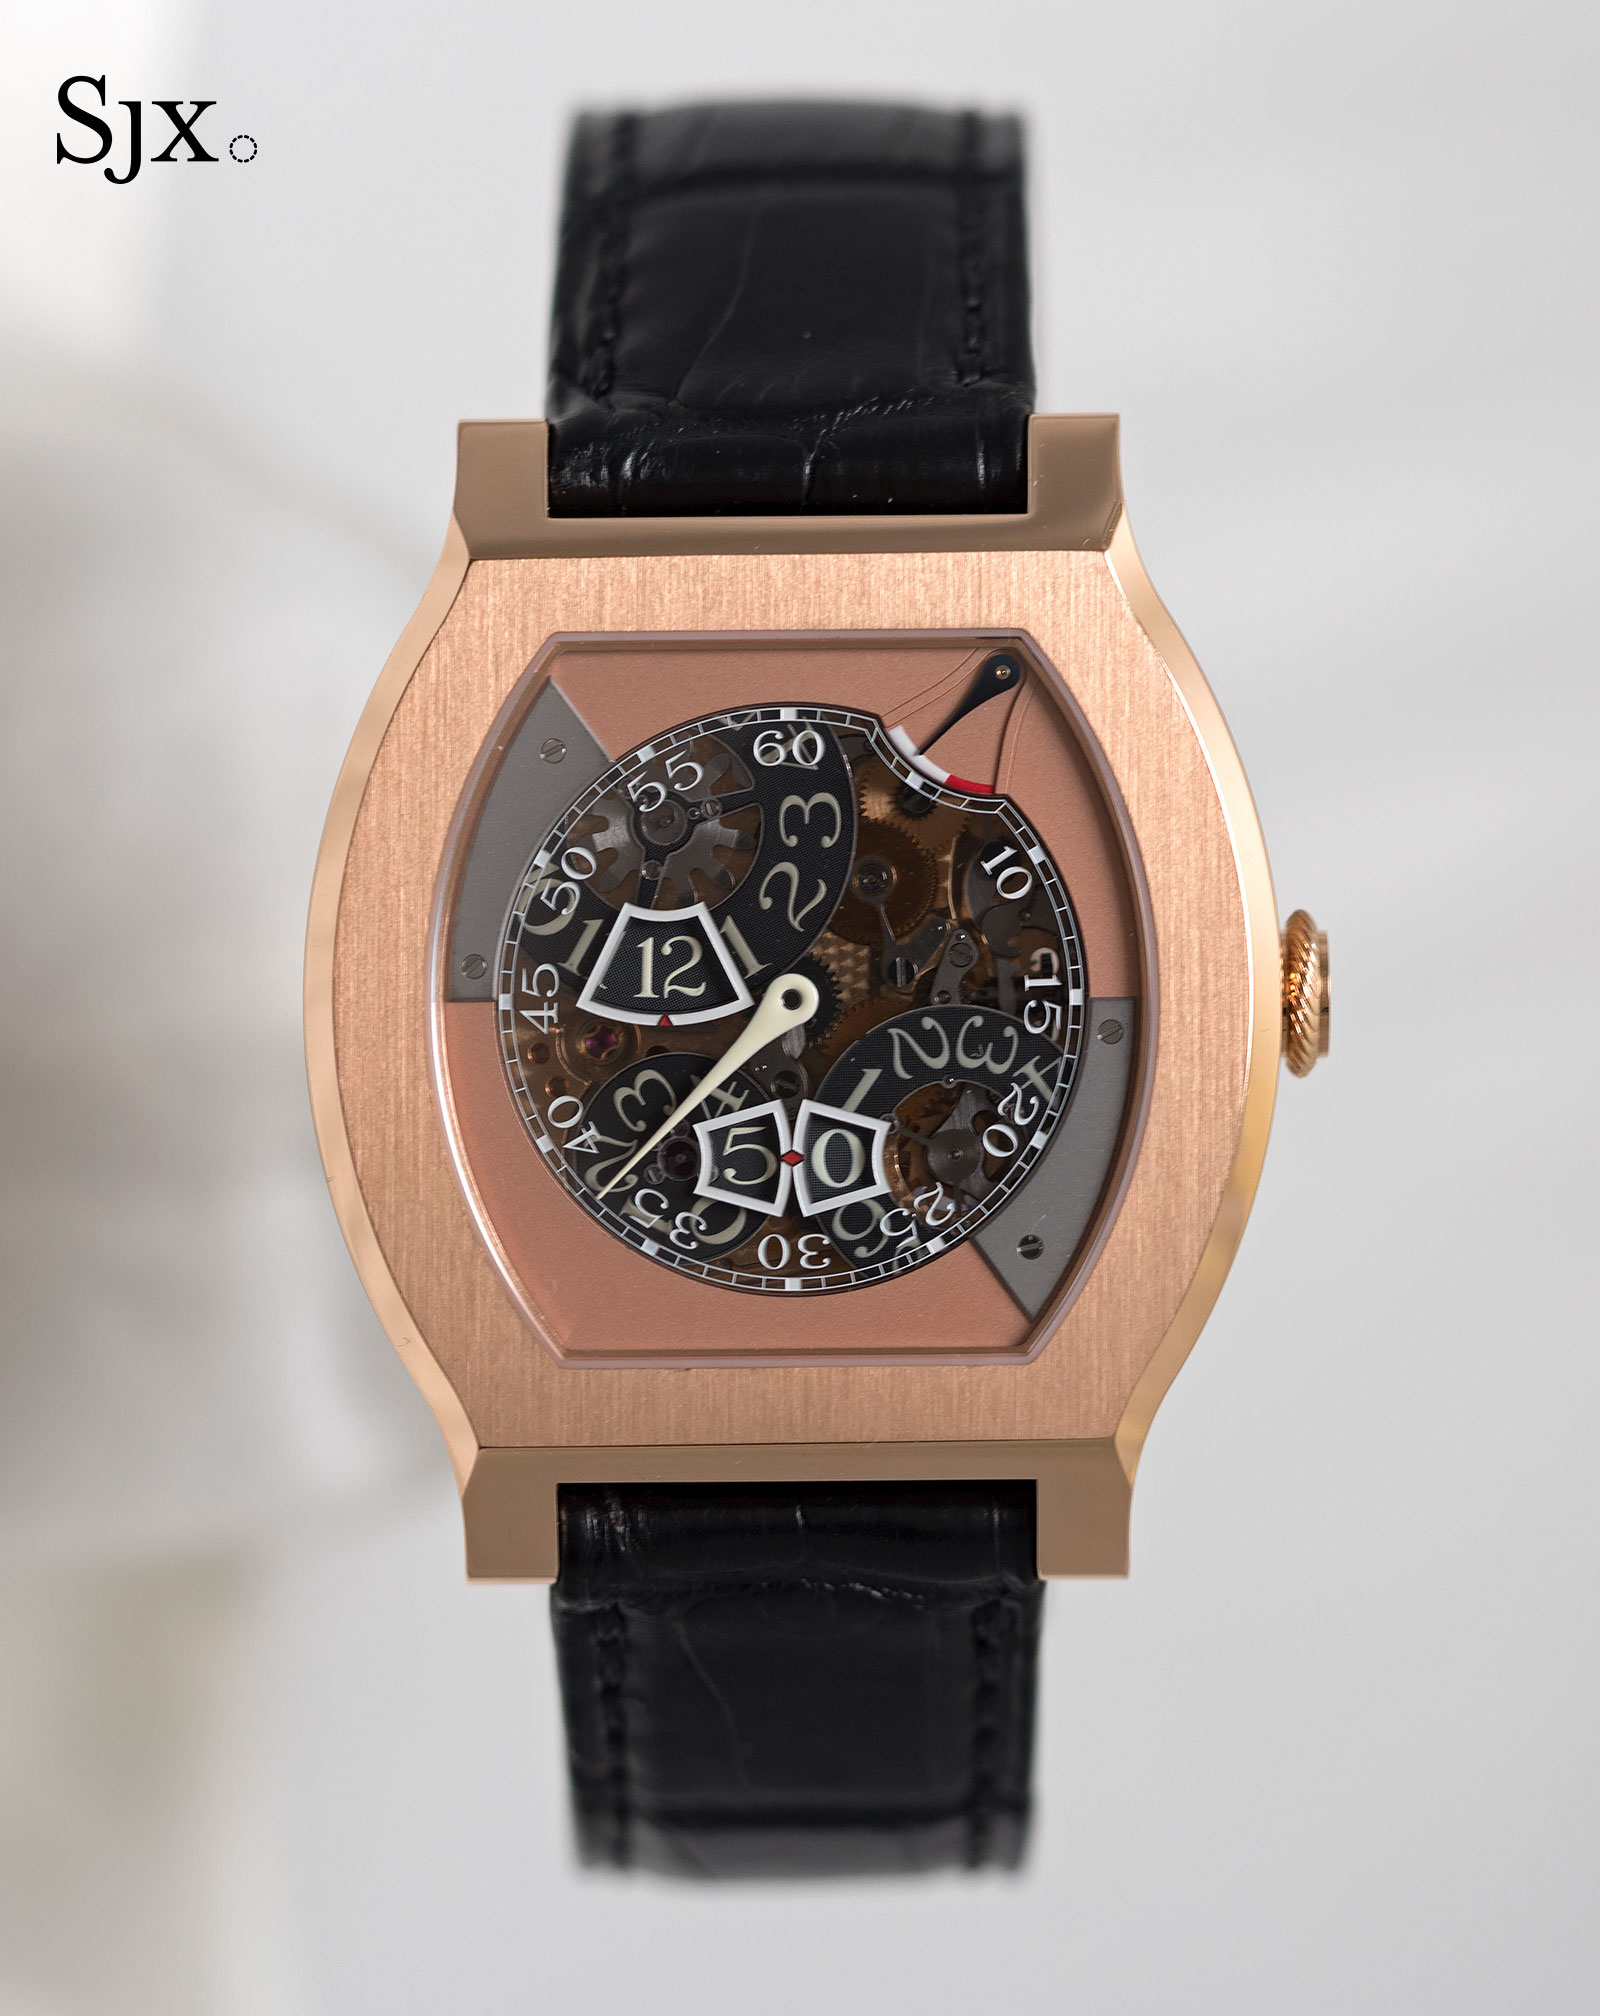 FP Journe Vagabondage III red gold 3